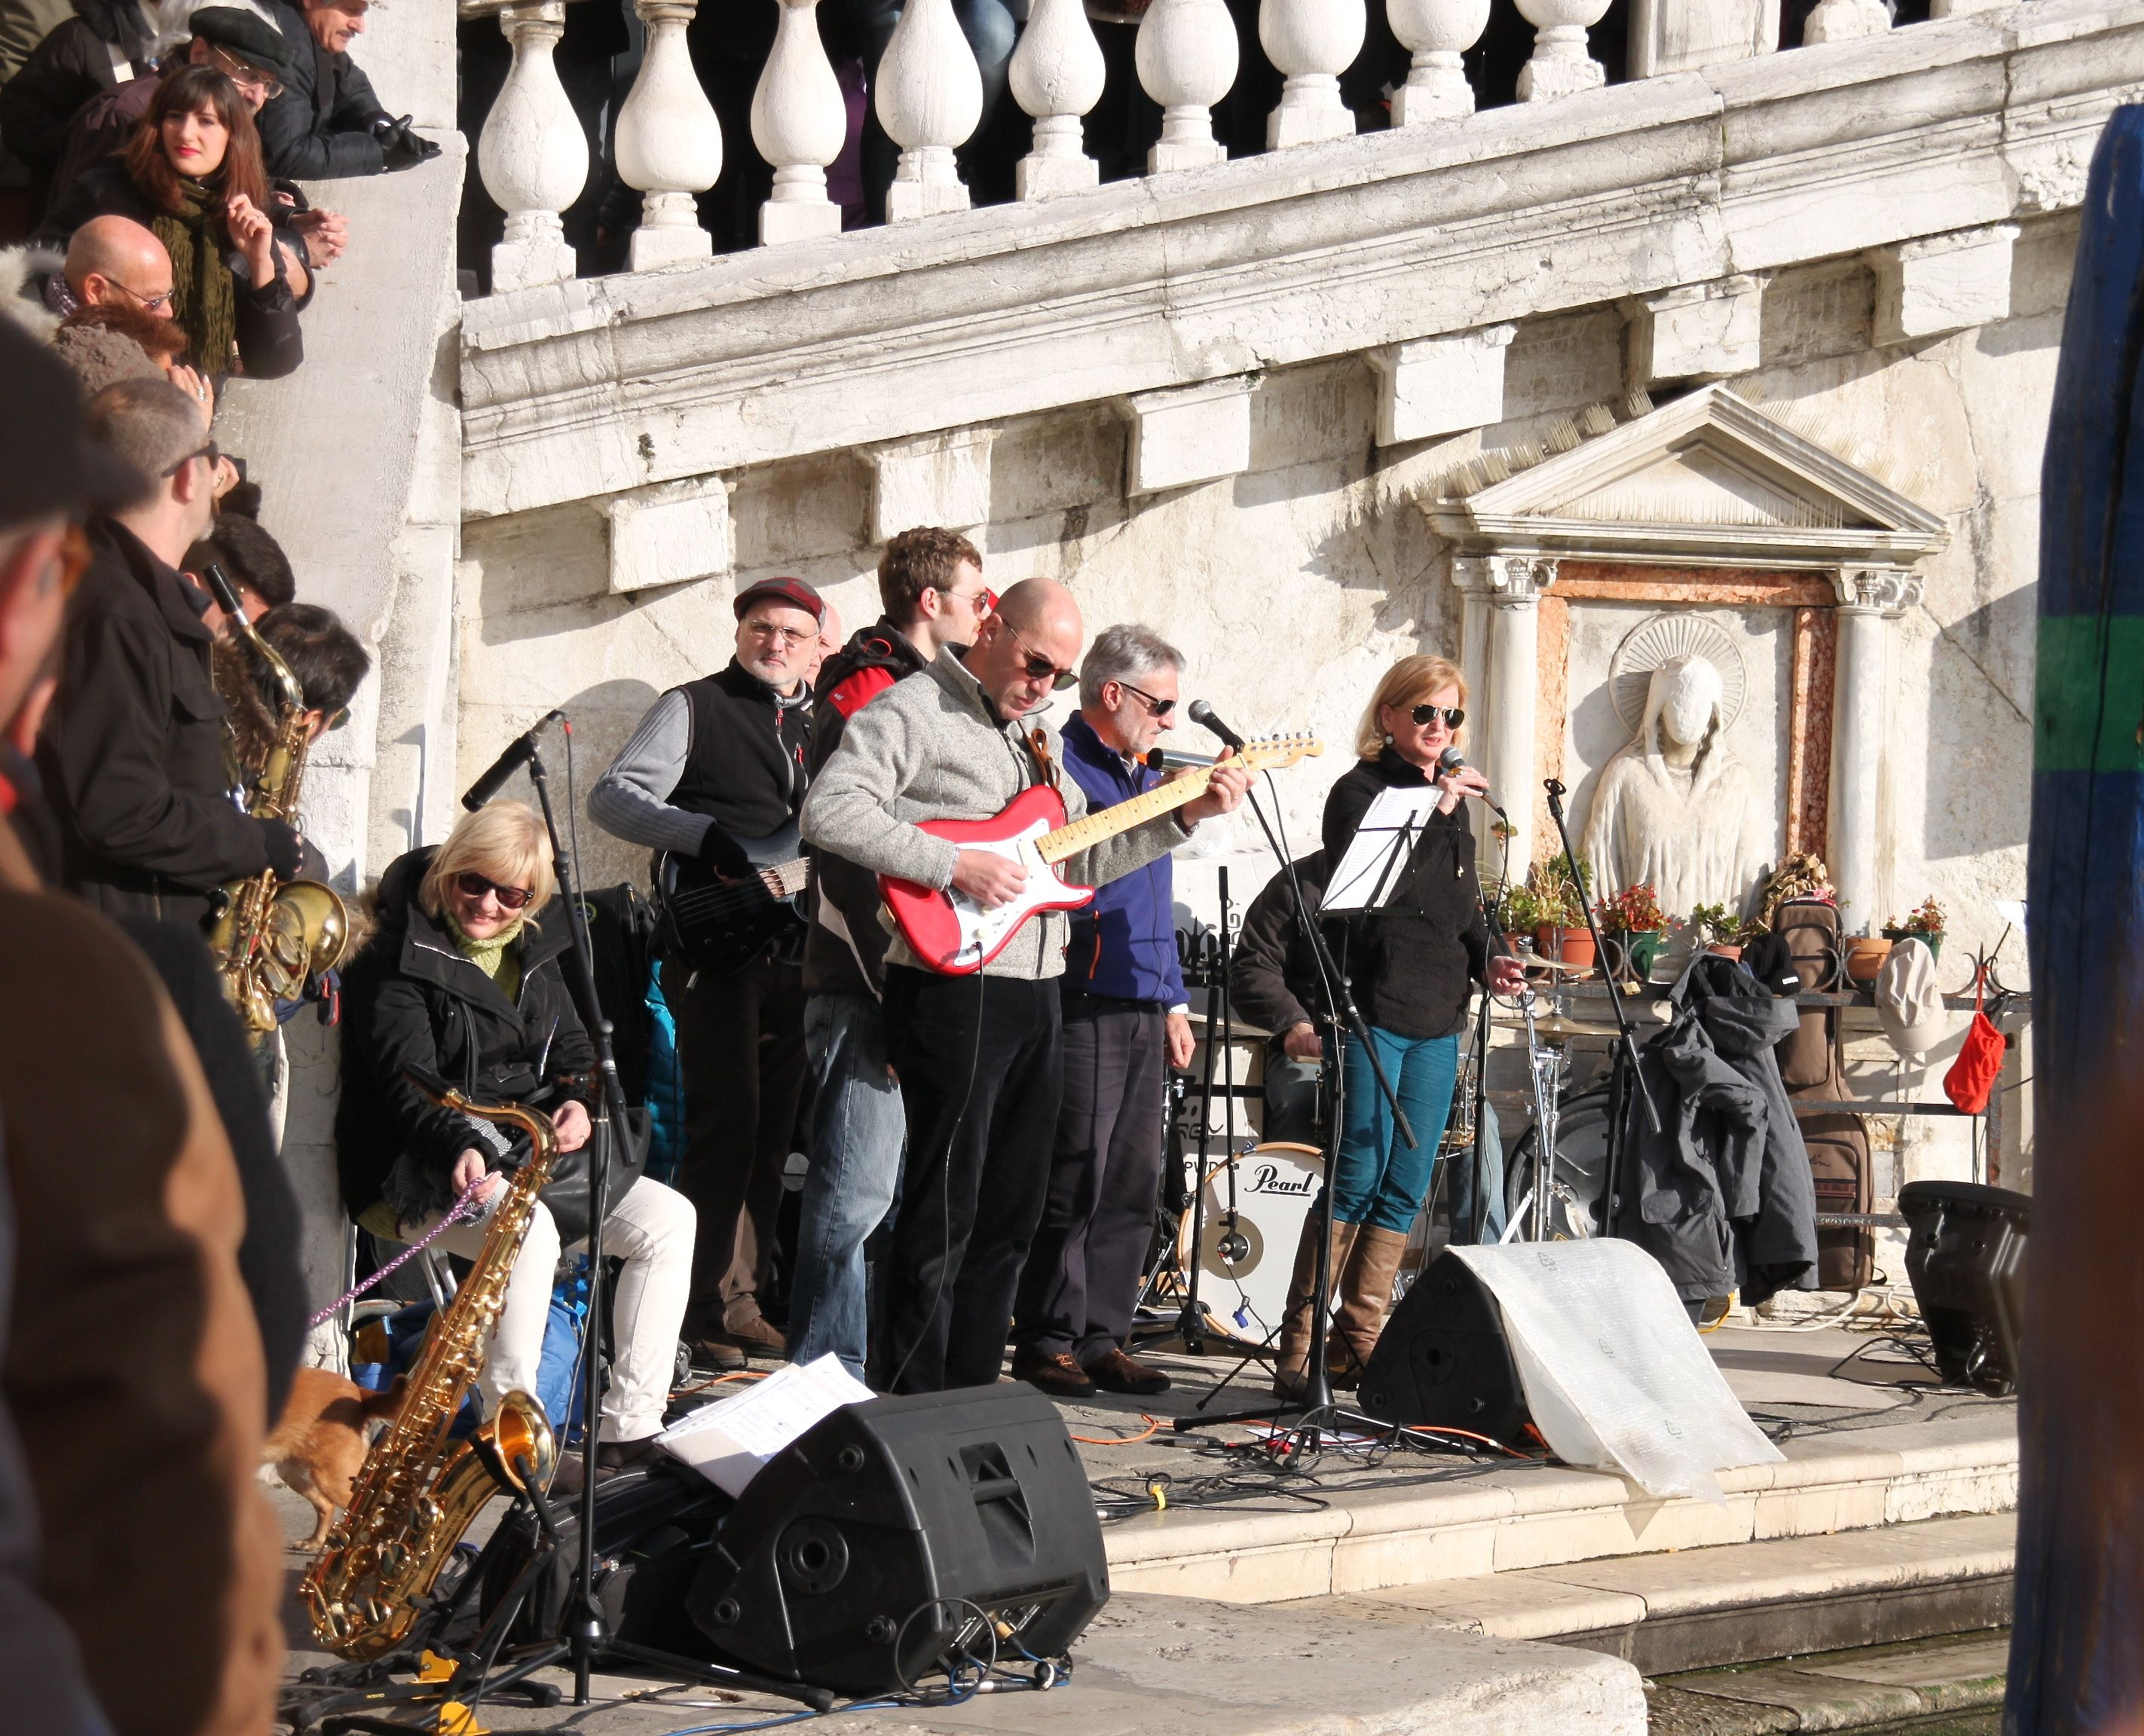 The band plays on the canal side under the Rialto Bridge